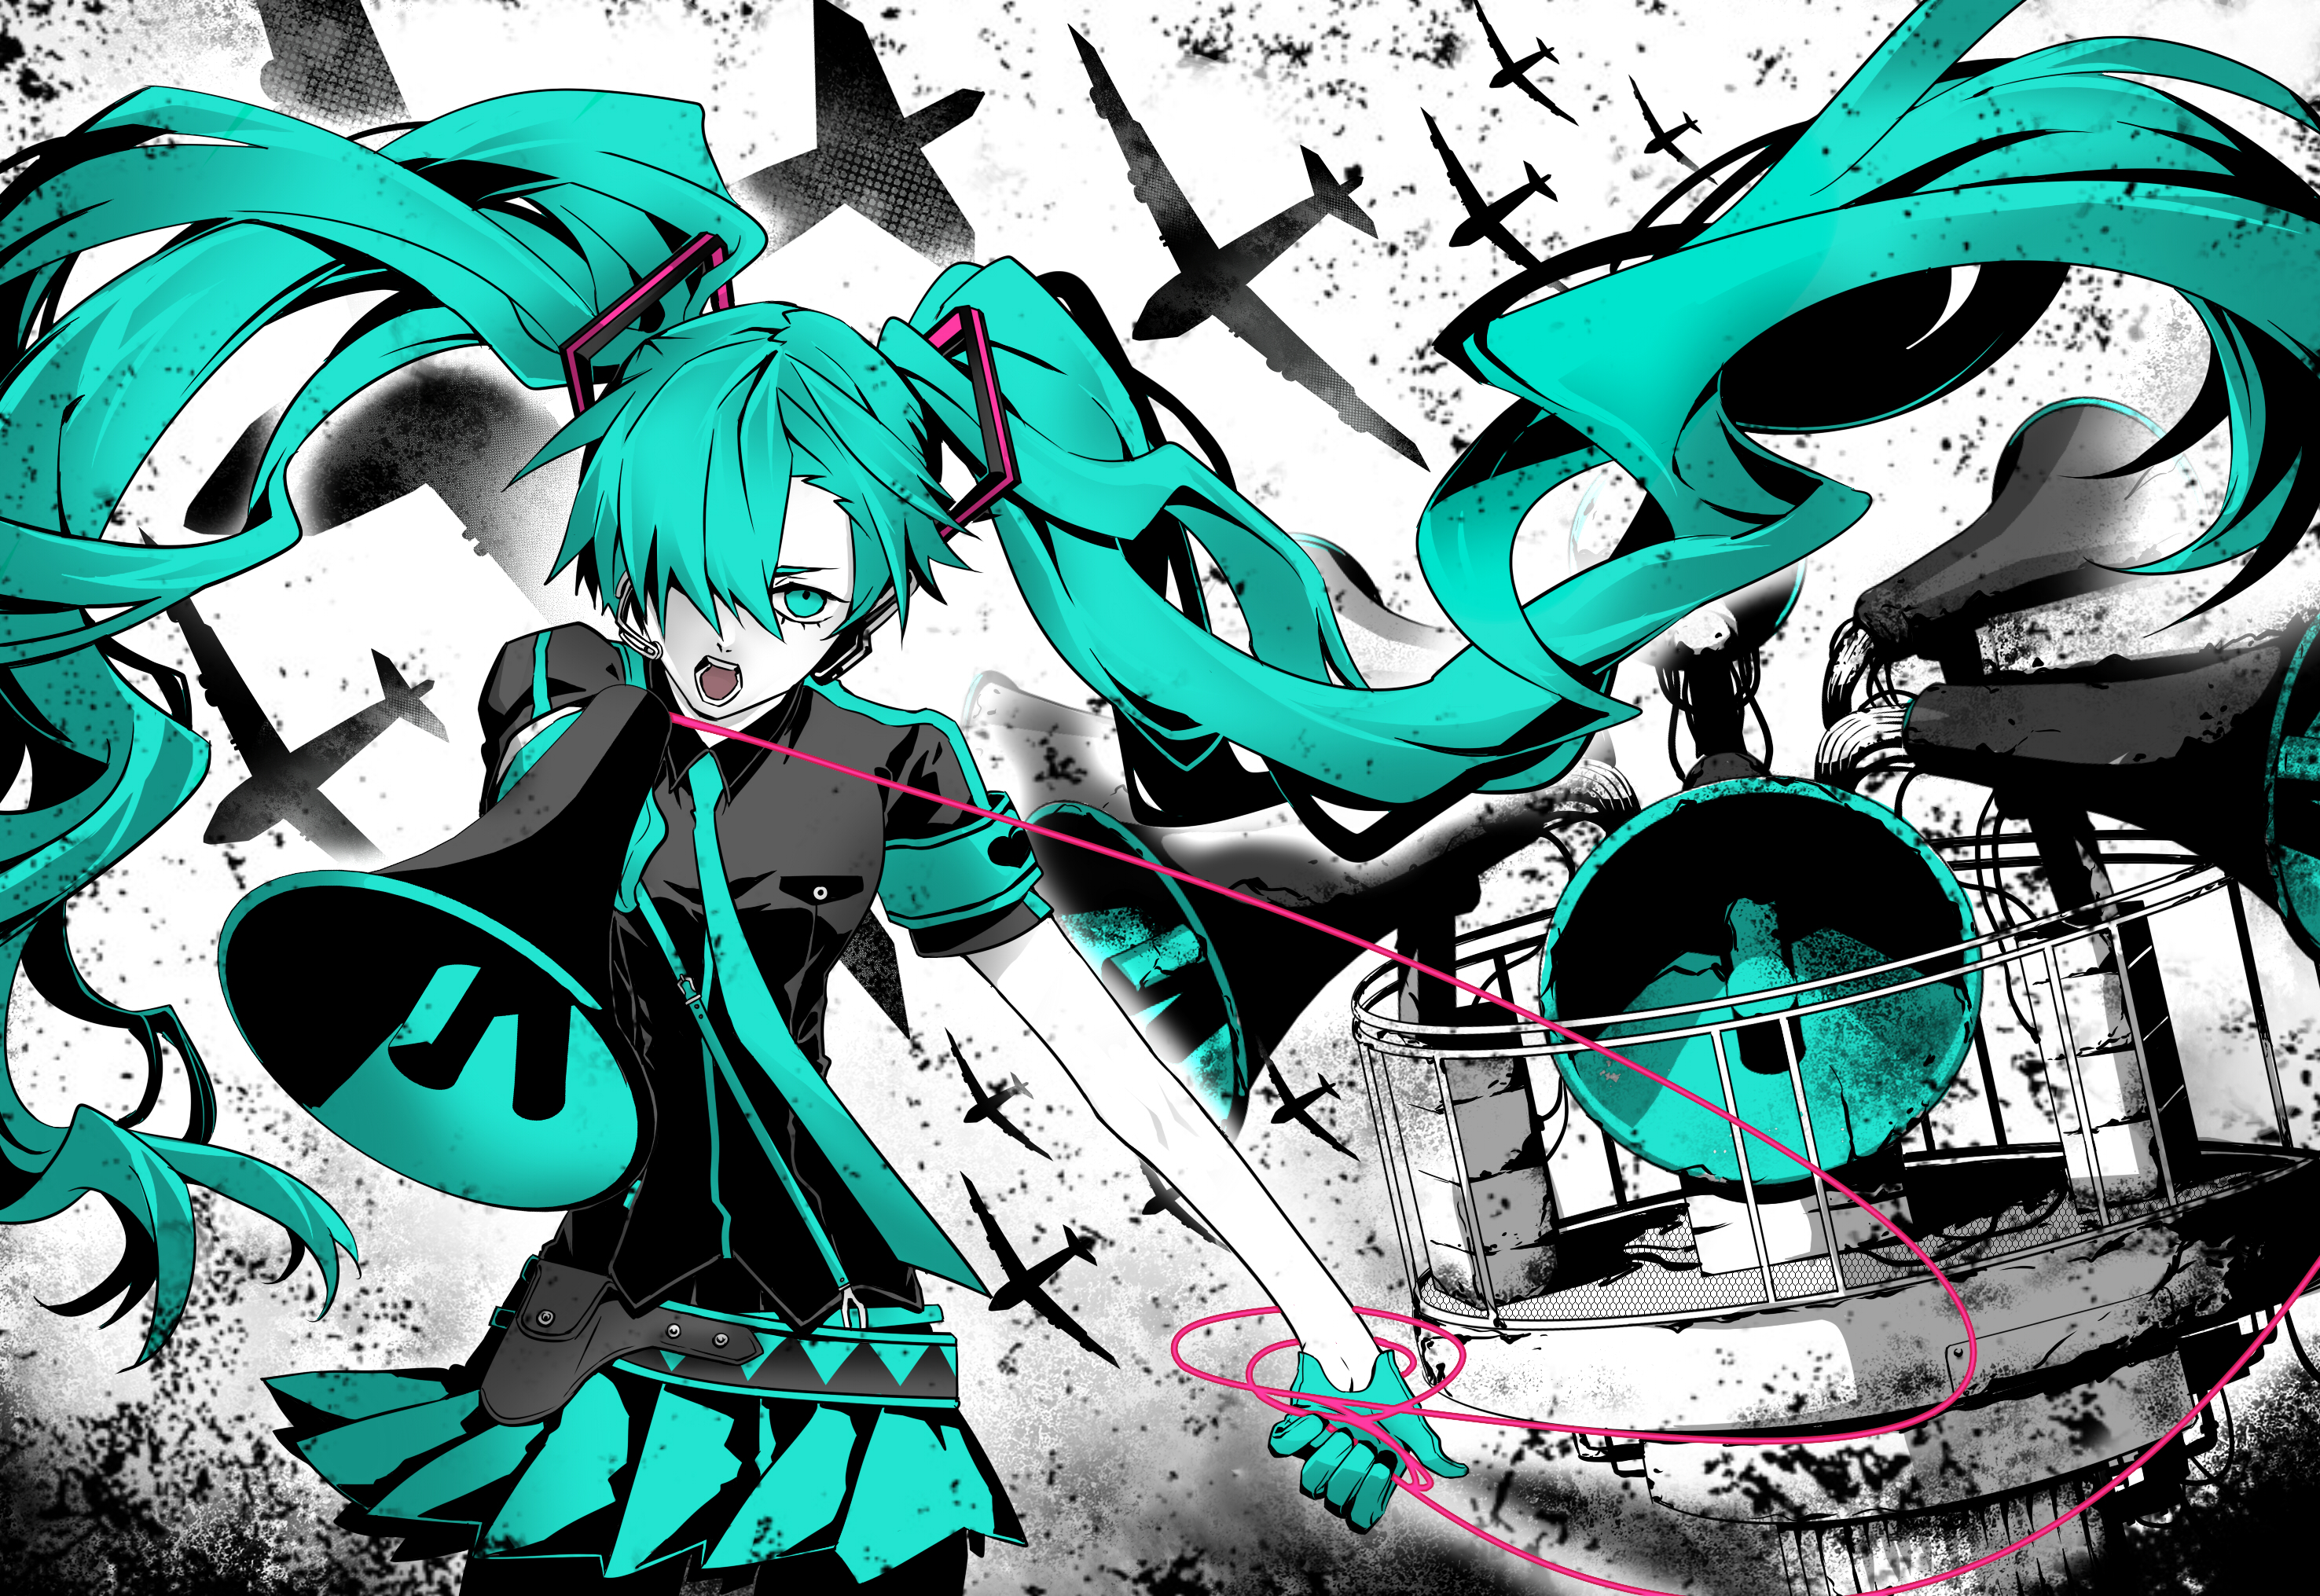 Vocaloid Full HD Wallpaper and Background | 2952x2031 | ID ...